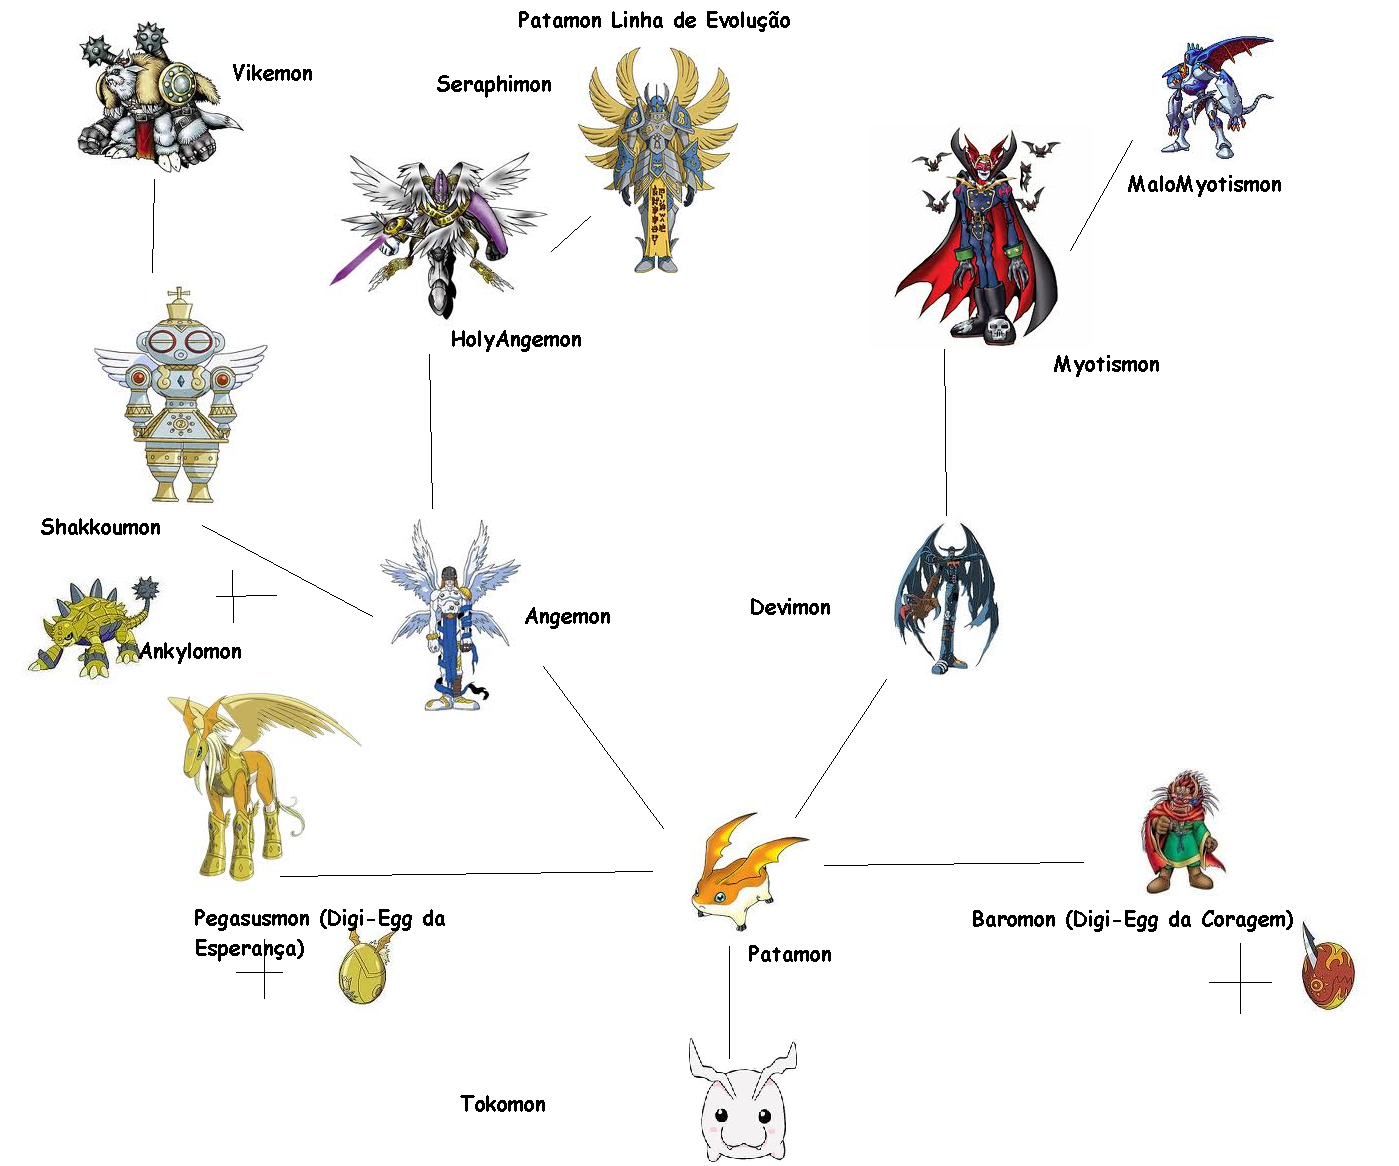 digimon palmon evolution - photo #37